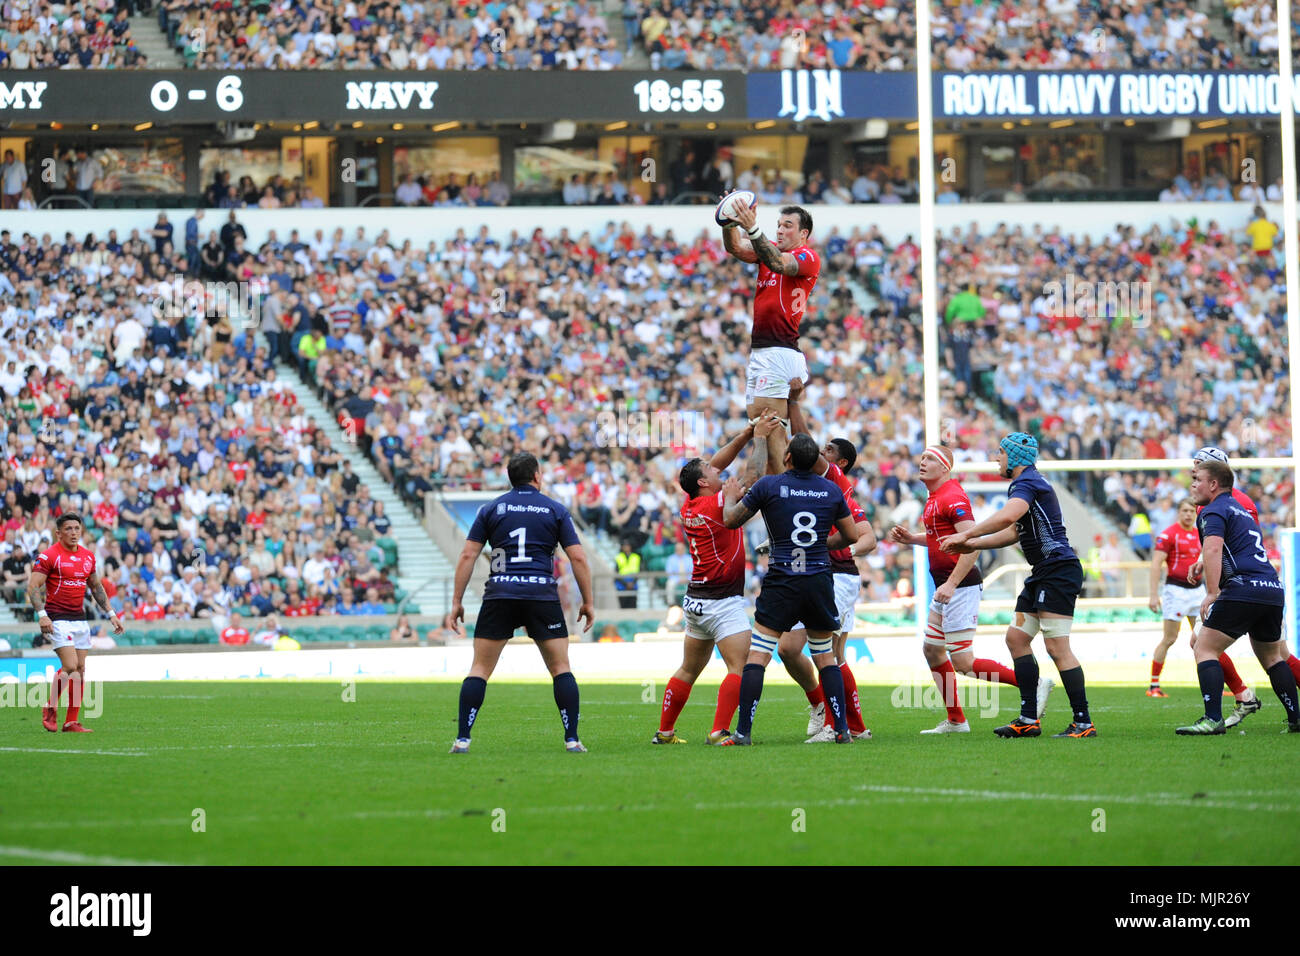 London, UK, 5 May 2018. Lewis Bean (Army, Corporal, Lock) catching the ball during a throw in at the annual Army V Navy for the Babcock Trophy match at Twickenham Stadium, London, UK.  The match was won by the British Army, 22-14.   Credit: Michael Preston/Alamy Live News - Stock Image